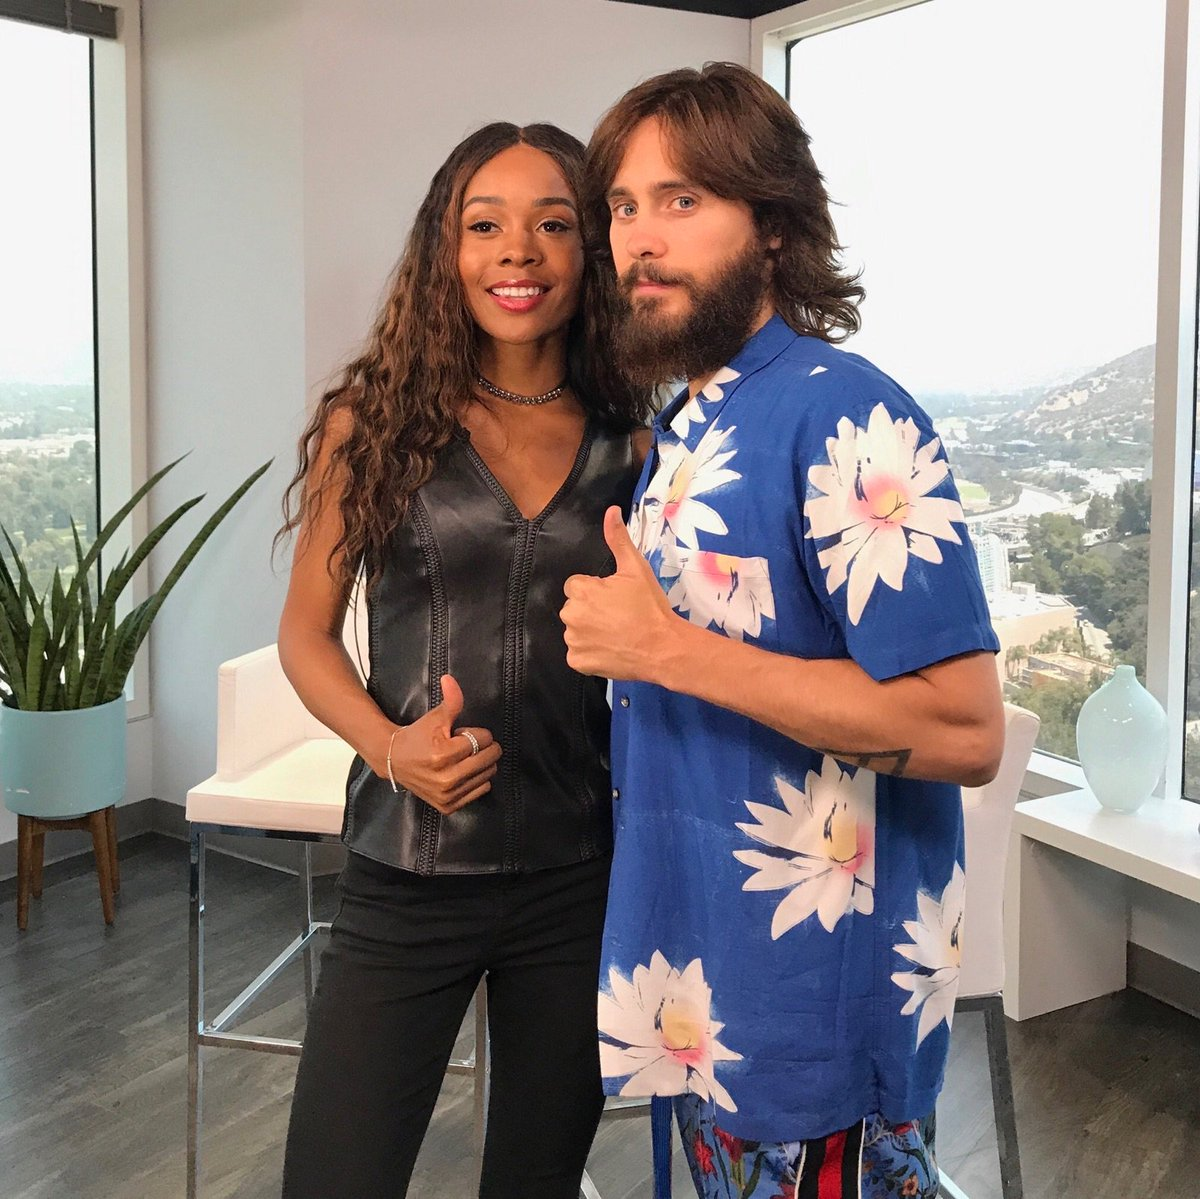 Tune in to @enews 7PM PT / 11PM ET TONIGHT!! ???????? #ADayInTheLifeOfAmerica https://t.co/JkVctVQfcJ